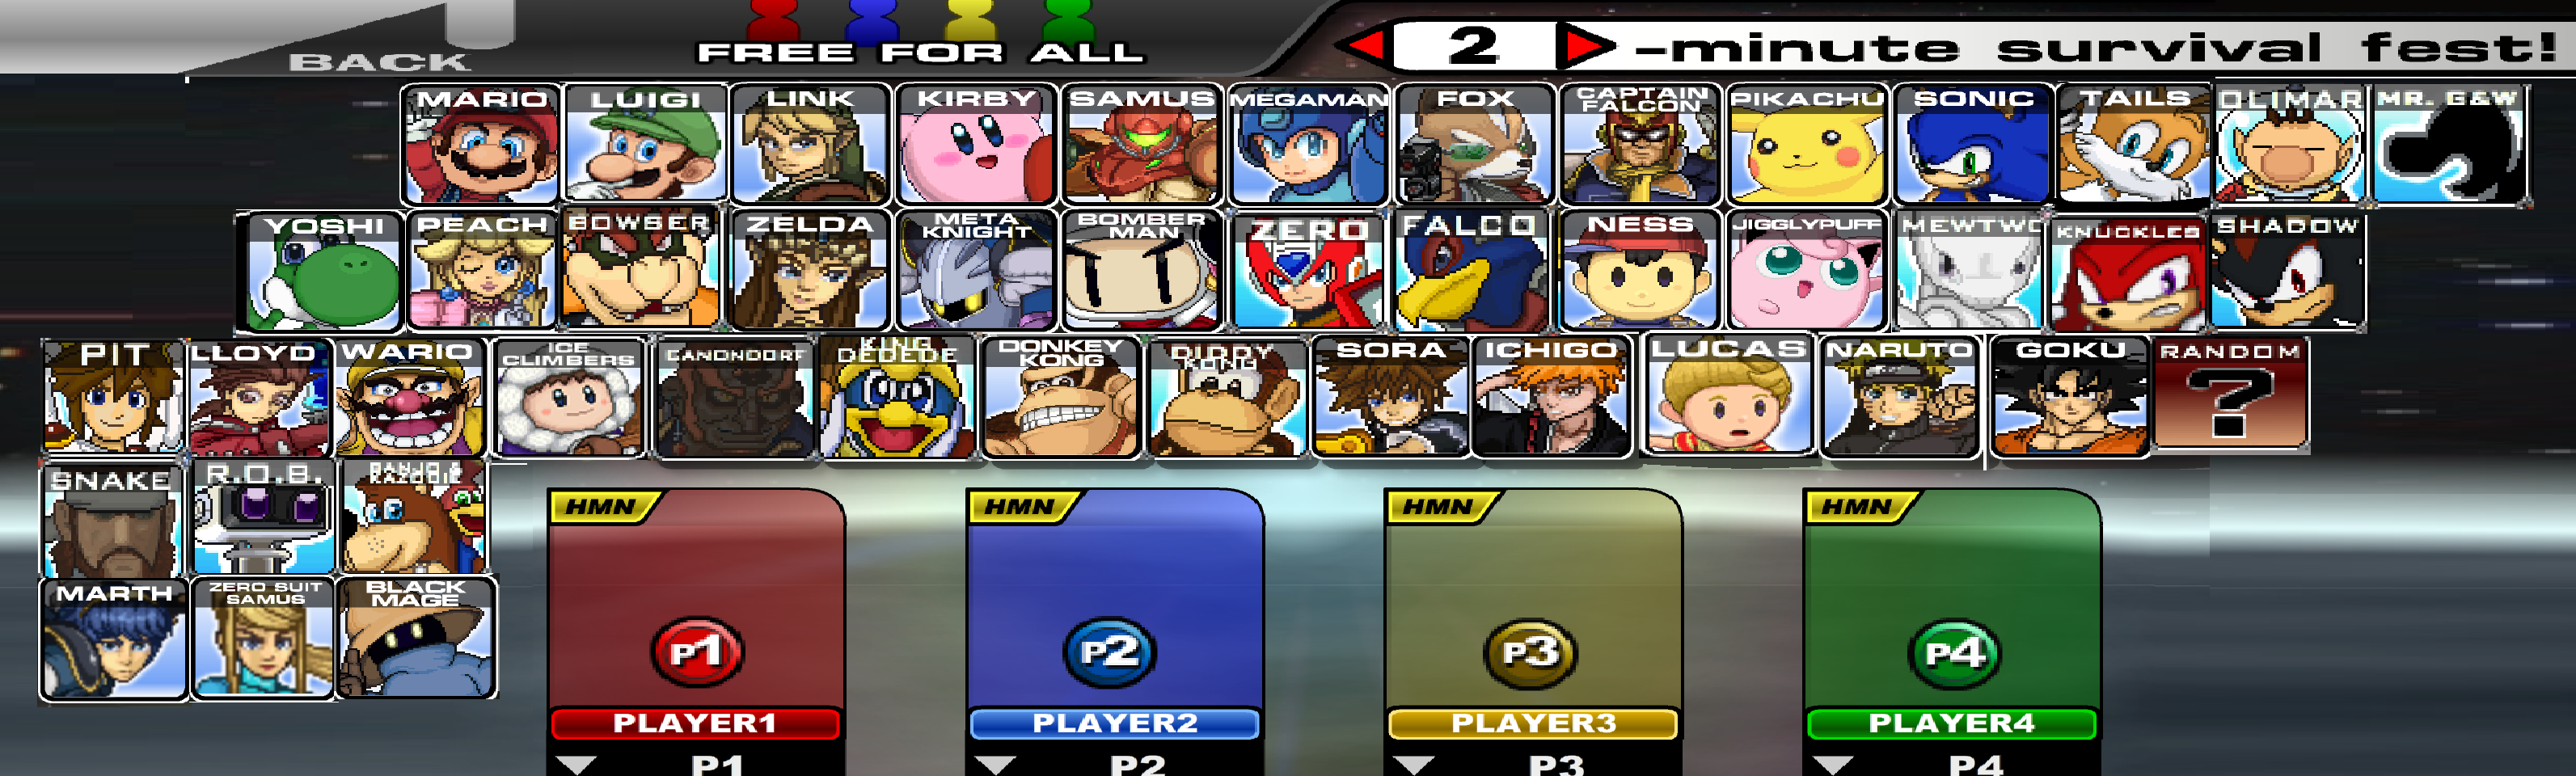 ⛔ Super smash flash 2 v0 9 full version download unblocked